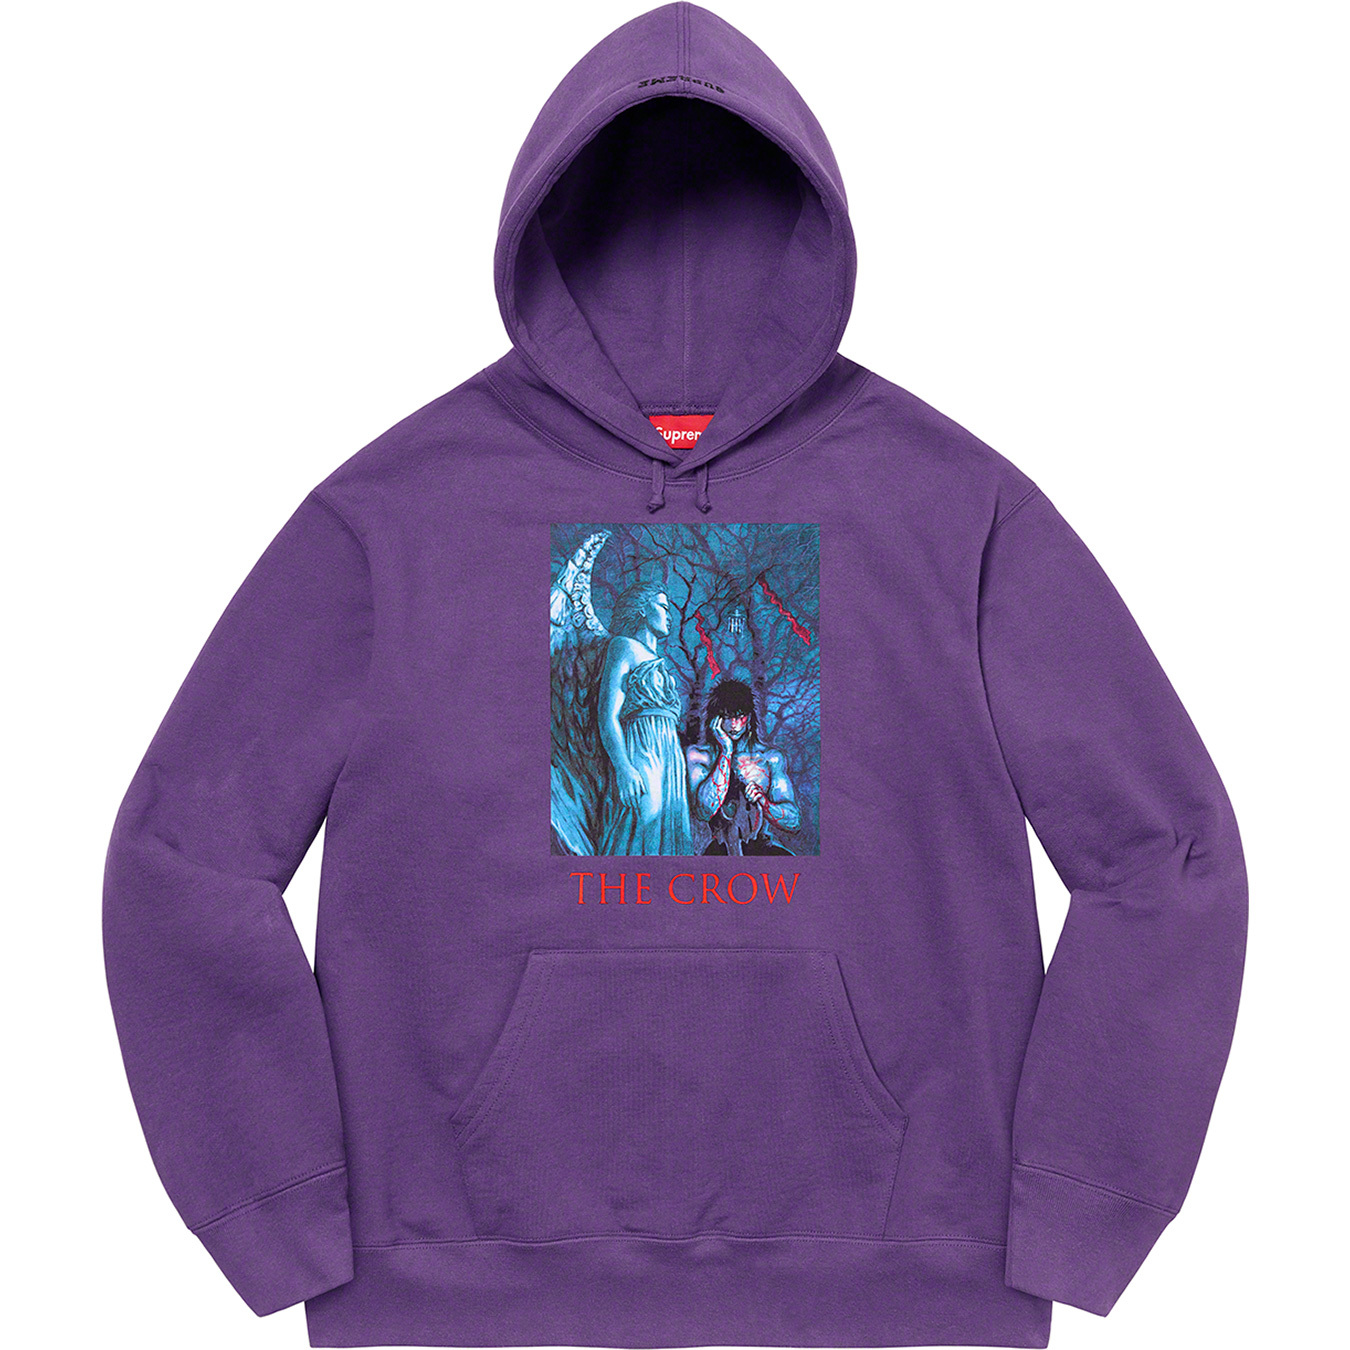 supreme-the-crow-21aw-21fw-collaboration-release-20210918-week4-hooded-sweatshirt